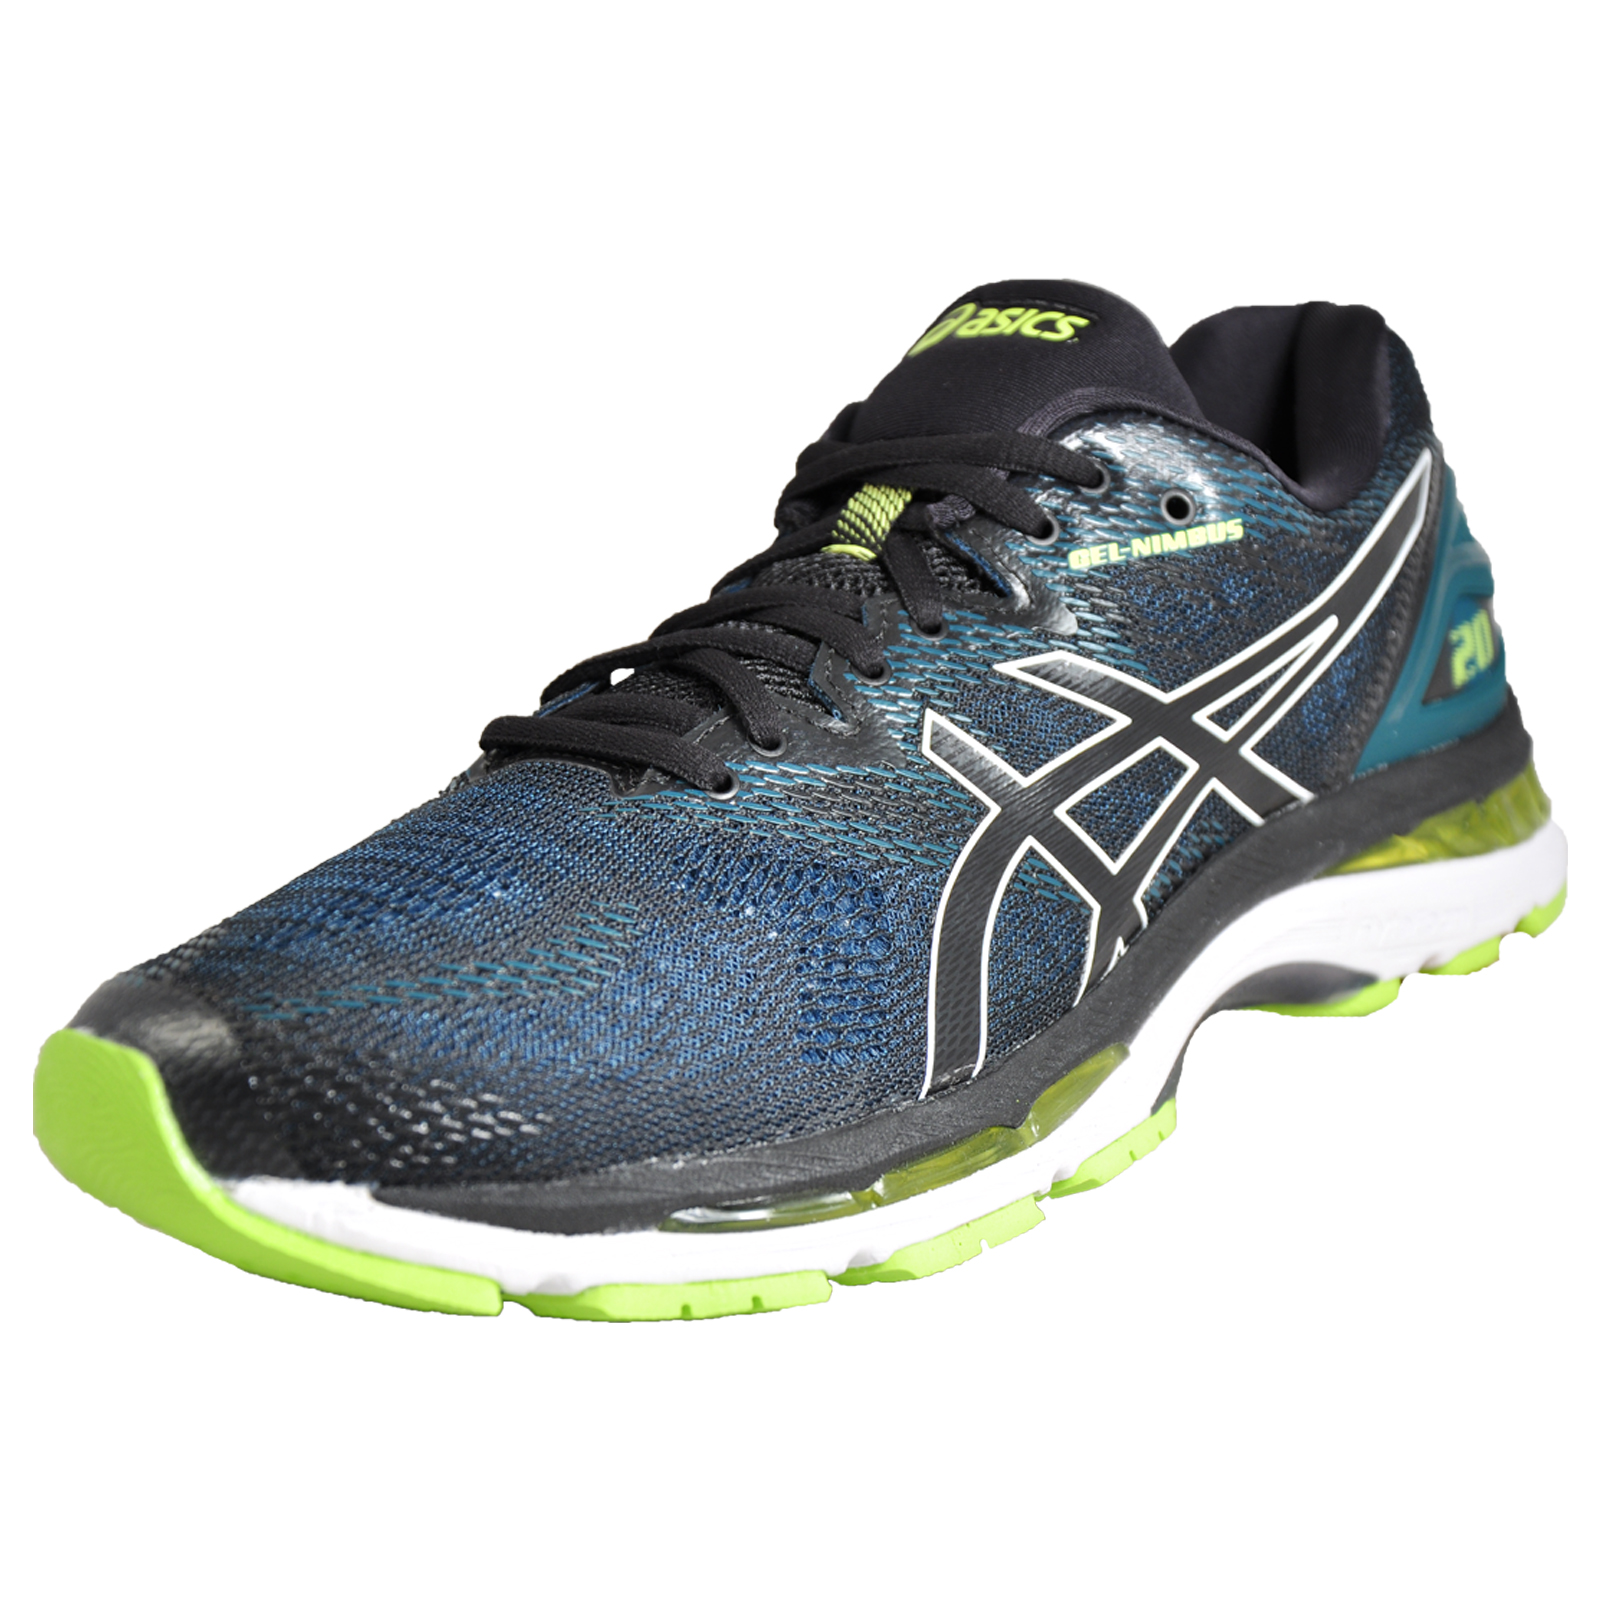 8864f1ddaa5f Details about Asics Gel Nimbus 20 Mens Premium High Perfomace Running Shoes  Trainers Black